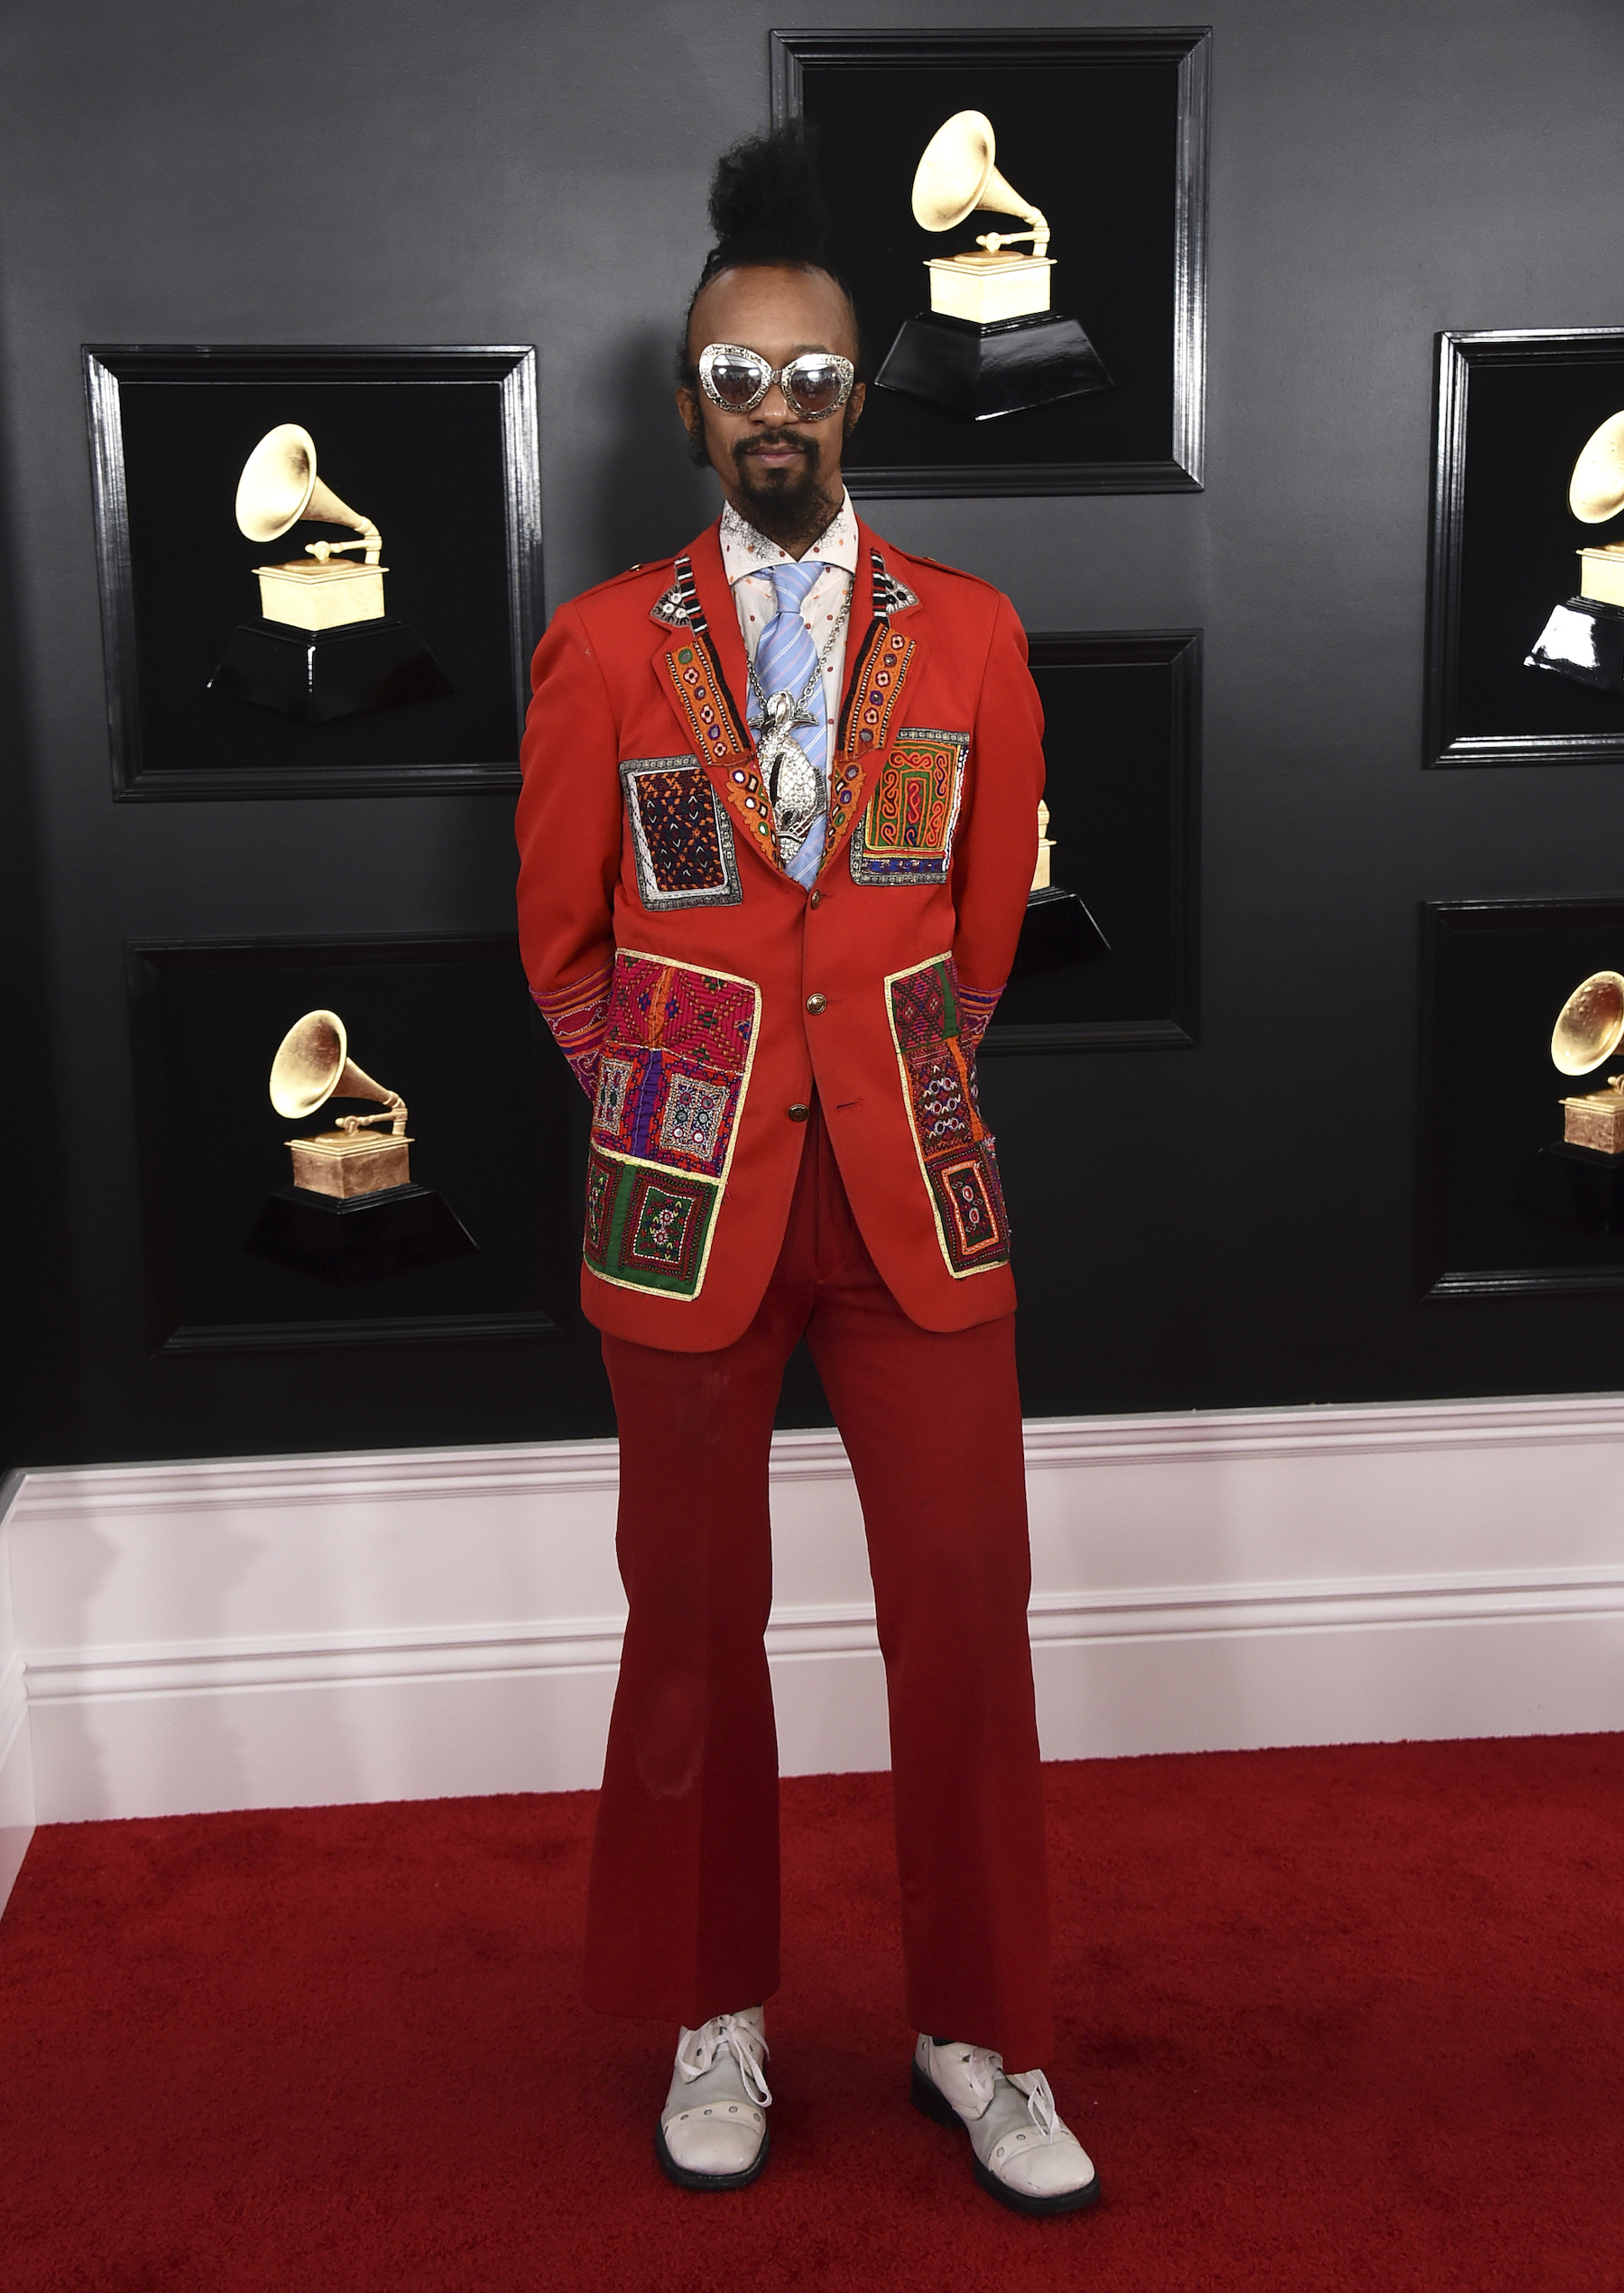 <div class='meta'><div class='origin-logo' data-origin='AP'></div><span class='caption-text' data-credit='Jordan Strauss/Invision/AP'>Fantastic Negrito arrives at the 61st annual Grammy Awards at the Staples Center on Sunday, Feb. 10, 2019, in Los Angeles.</span></div>